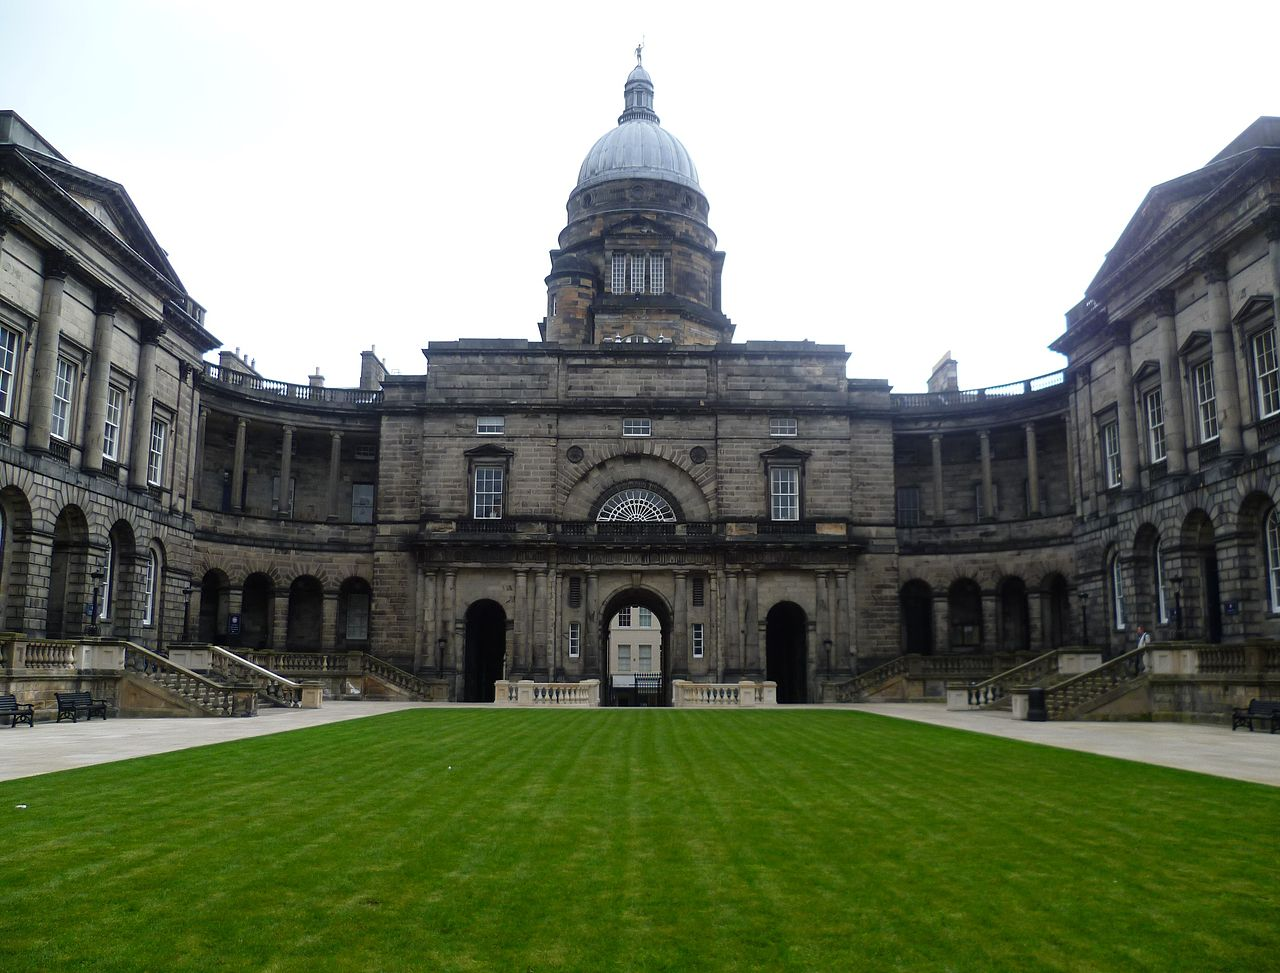 Edinburgh University's Old College Image: Kim Traynor